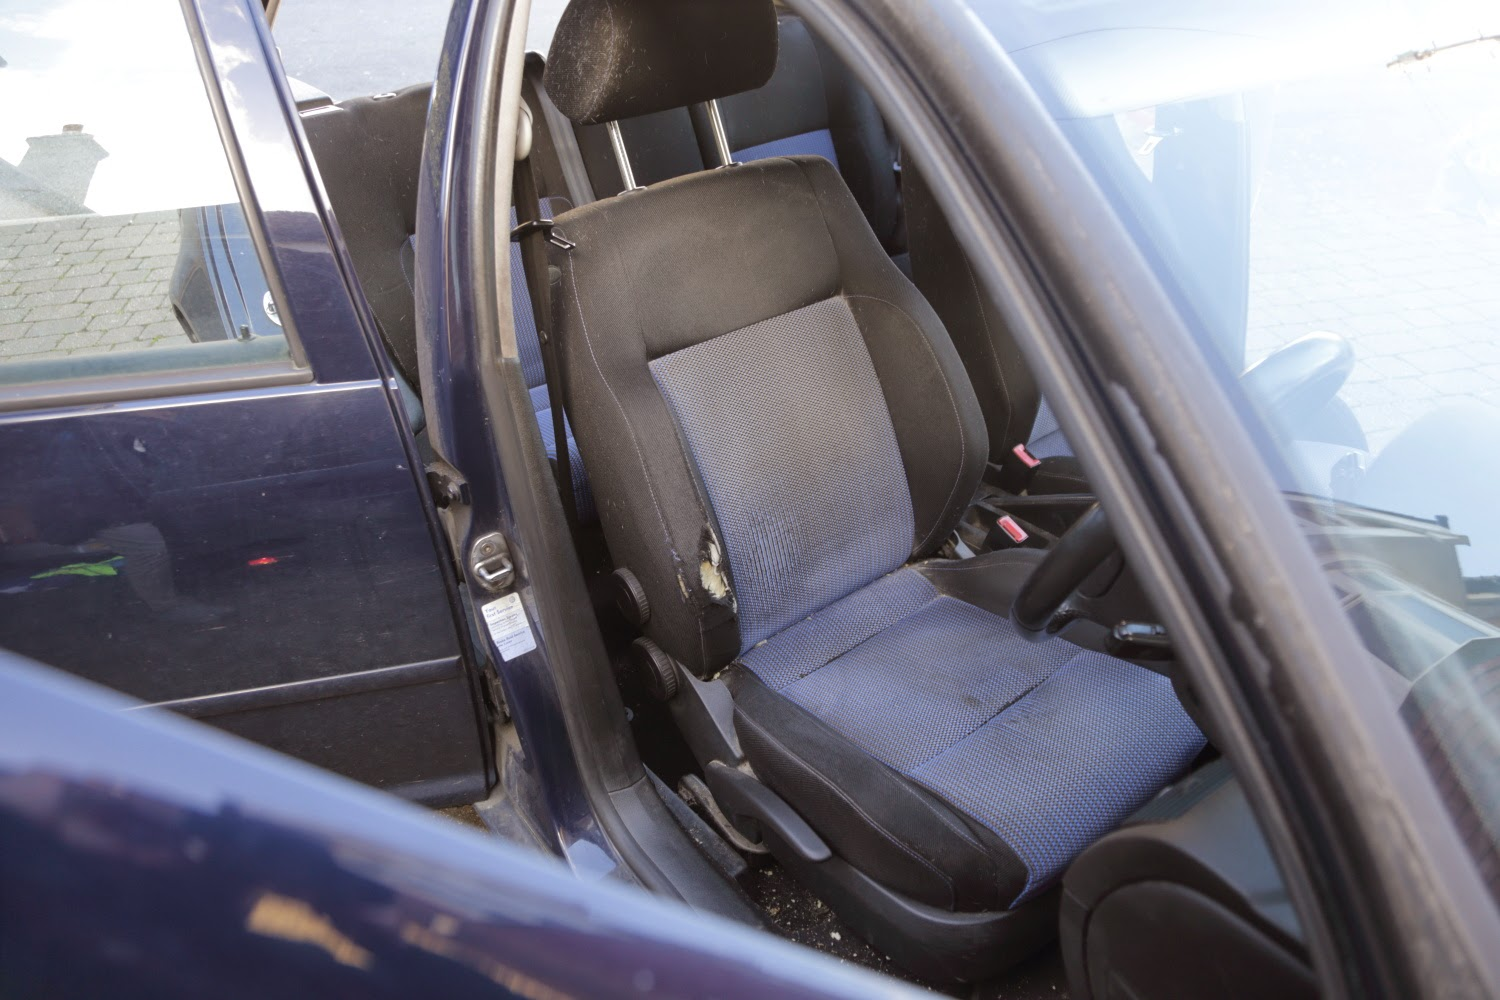 Removing the seats from VW Golf Mk4 TDI GT 150PD